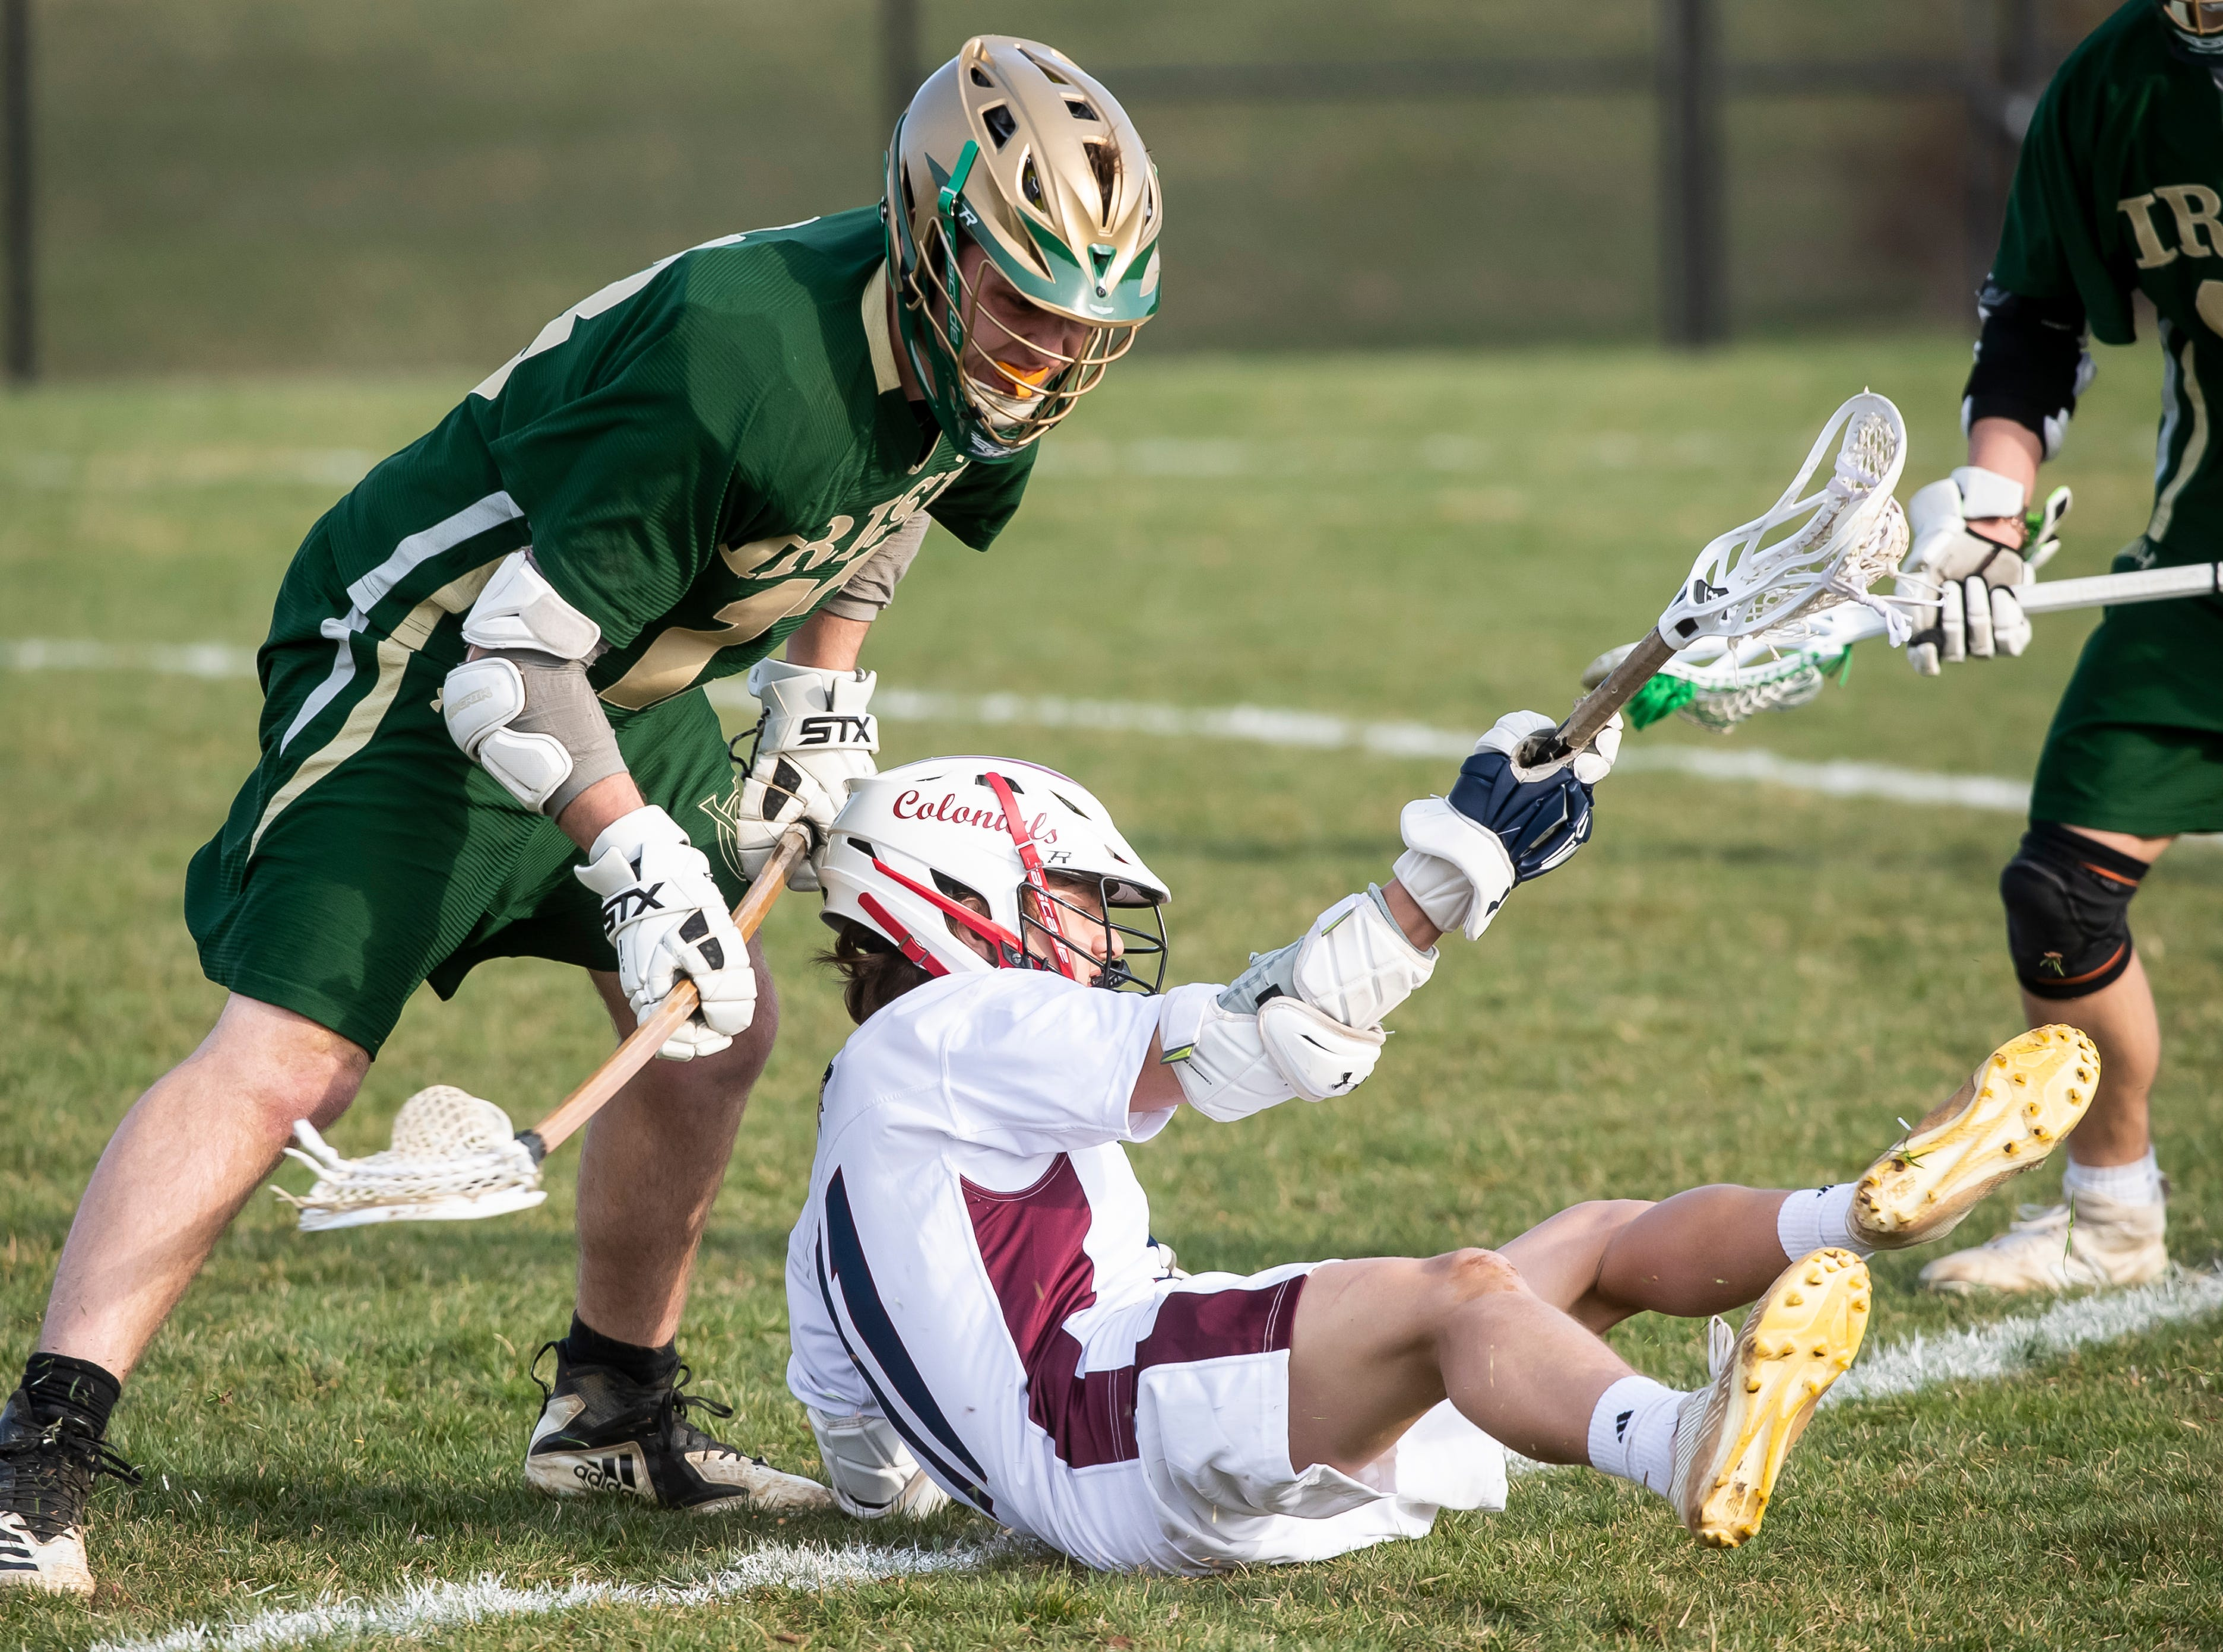 New Oxford's Lance Beckner holds onto the ball while falling to the ground during a YAIAA boys' lacrosse game against York Catholic on Thursday, April 4, 2019. York Catholic won 14-8.